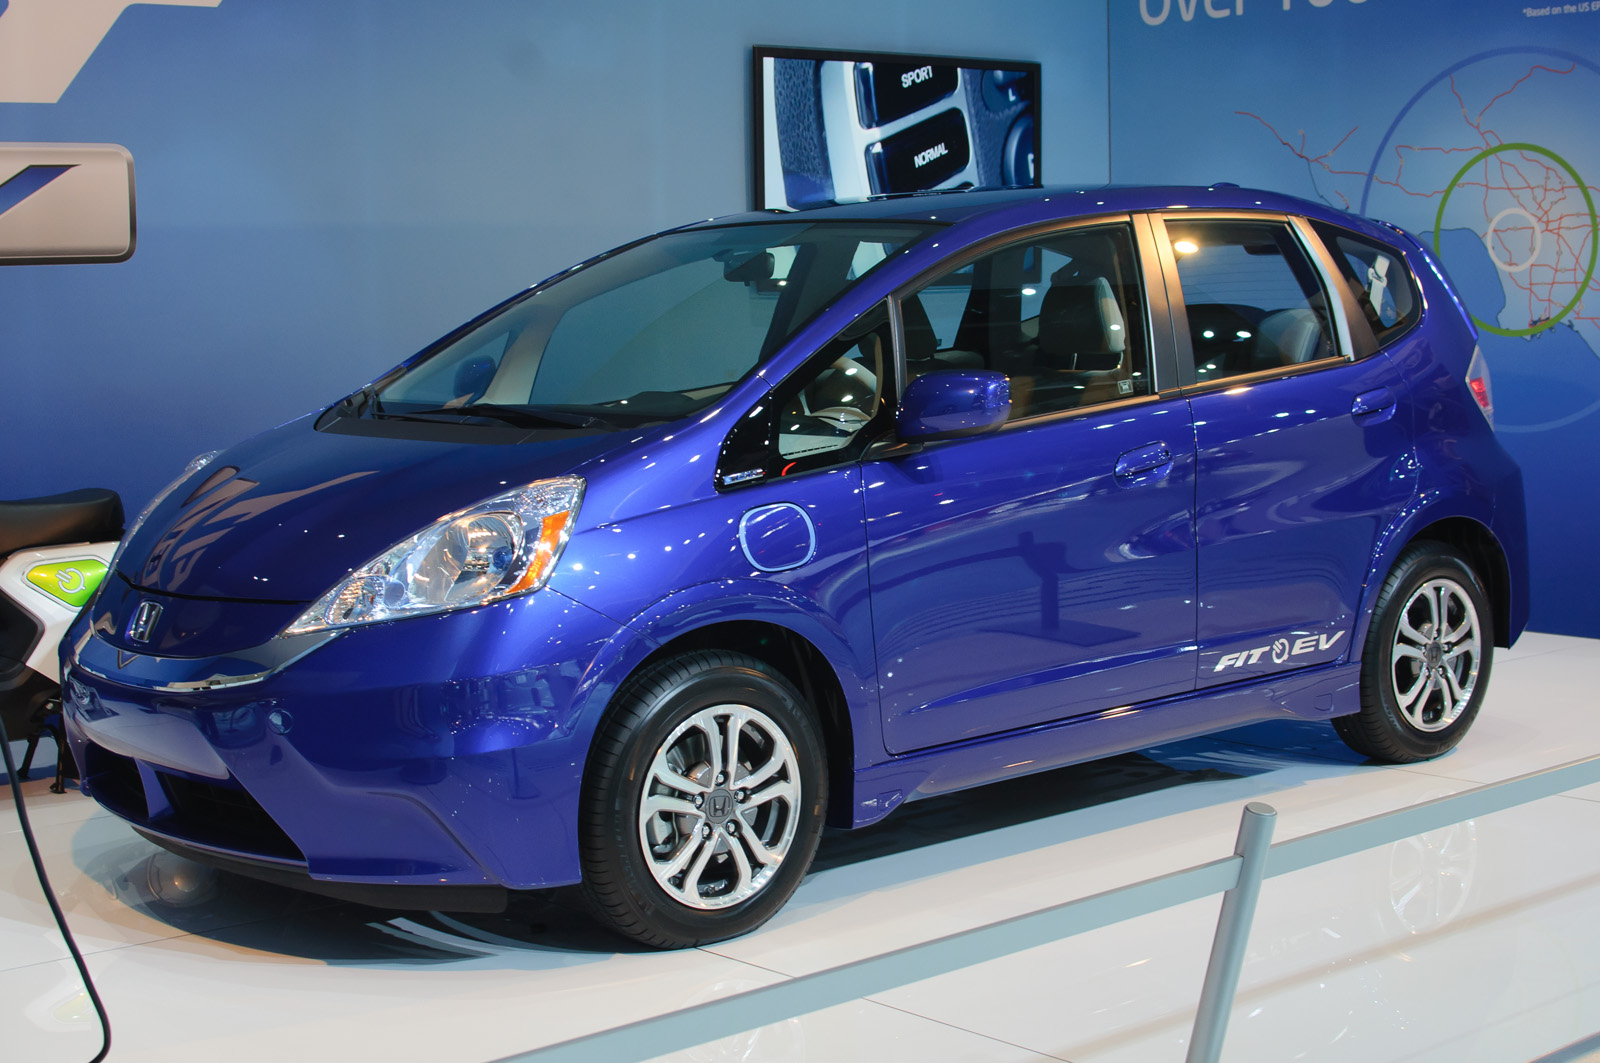 hight resolution of 2013 model year honda fit ev electric car unveiled at the 2011 la auto show